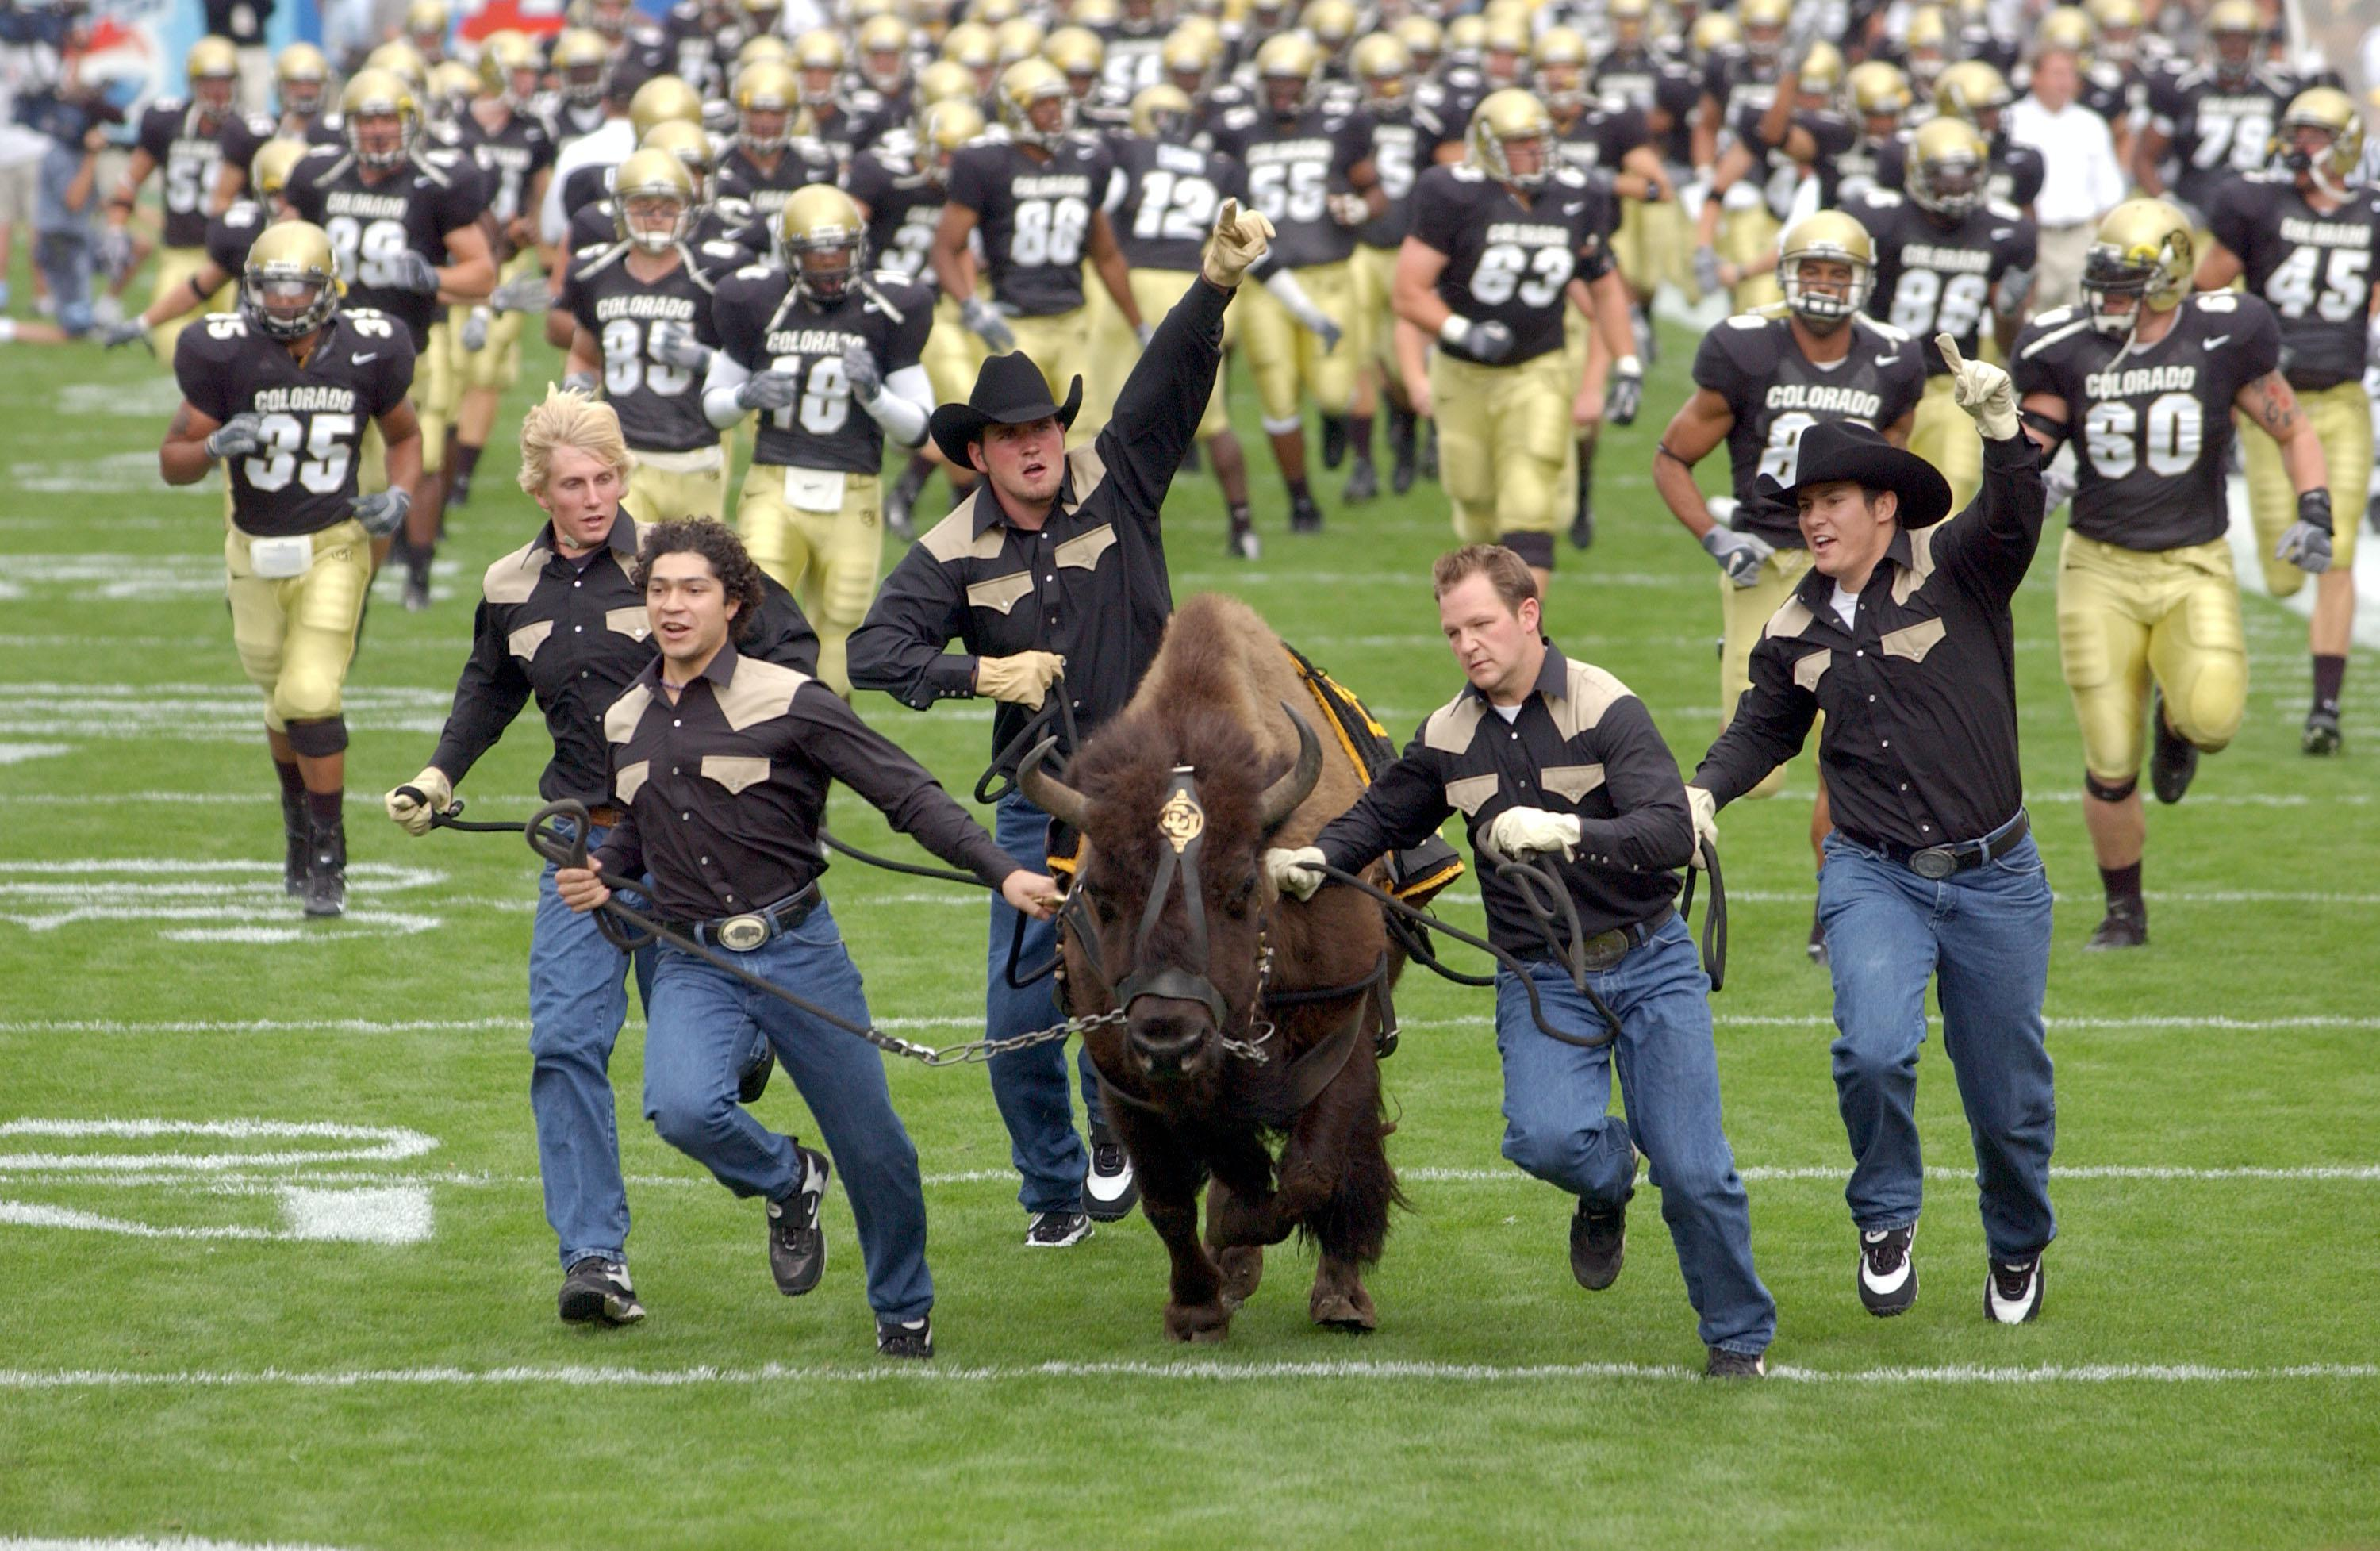 Image result for University of Colorado mascot, images